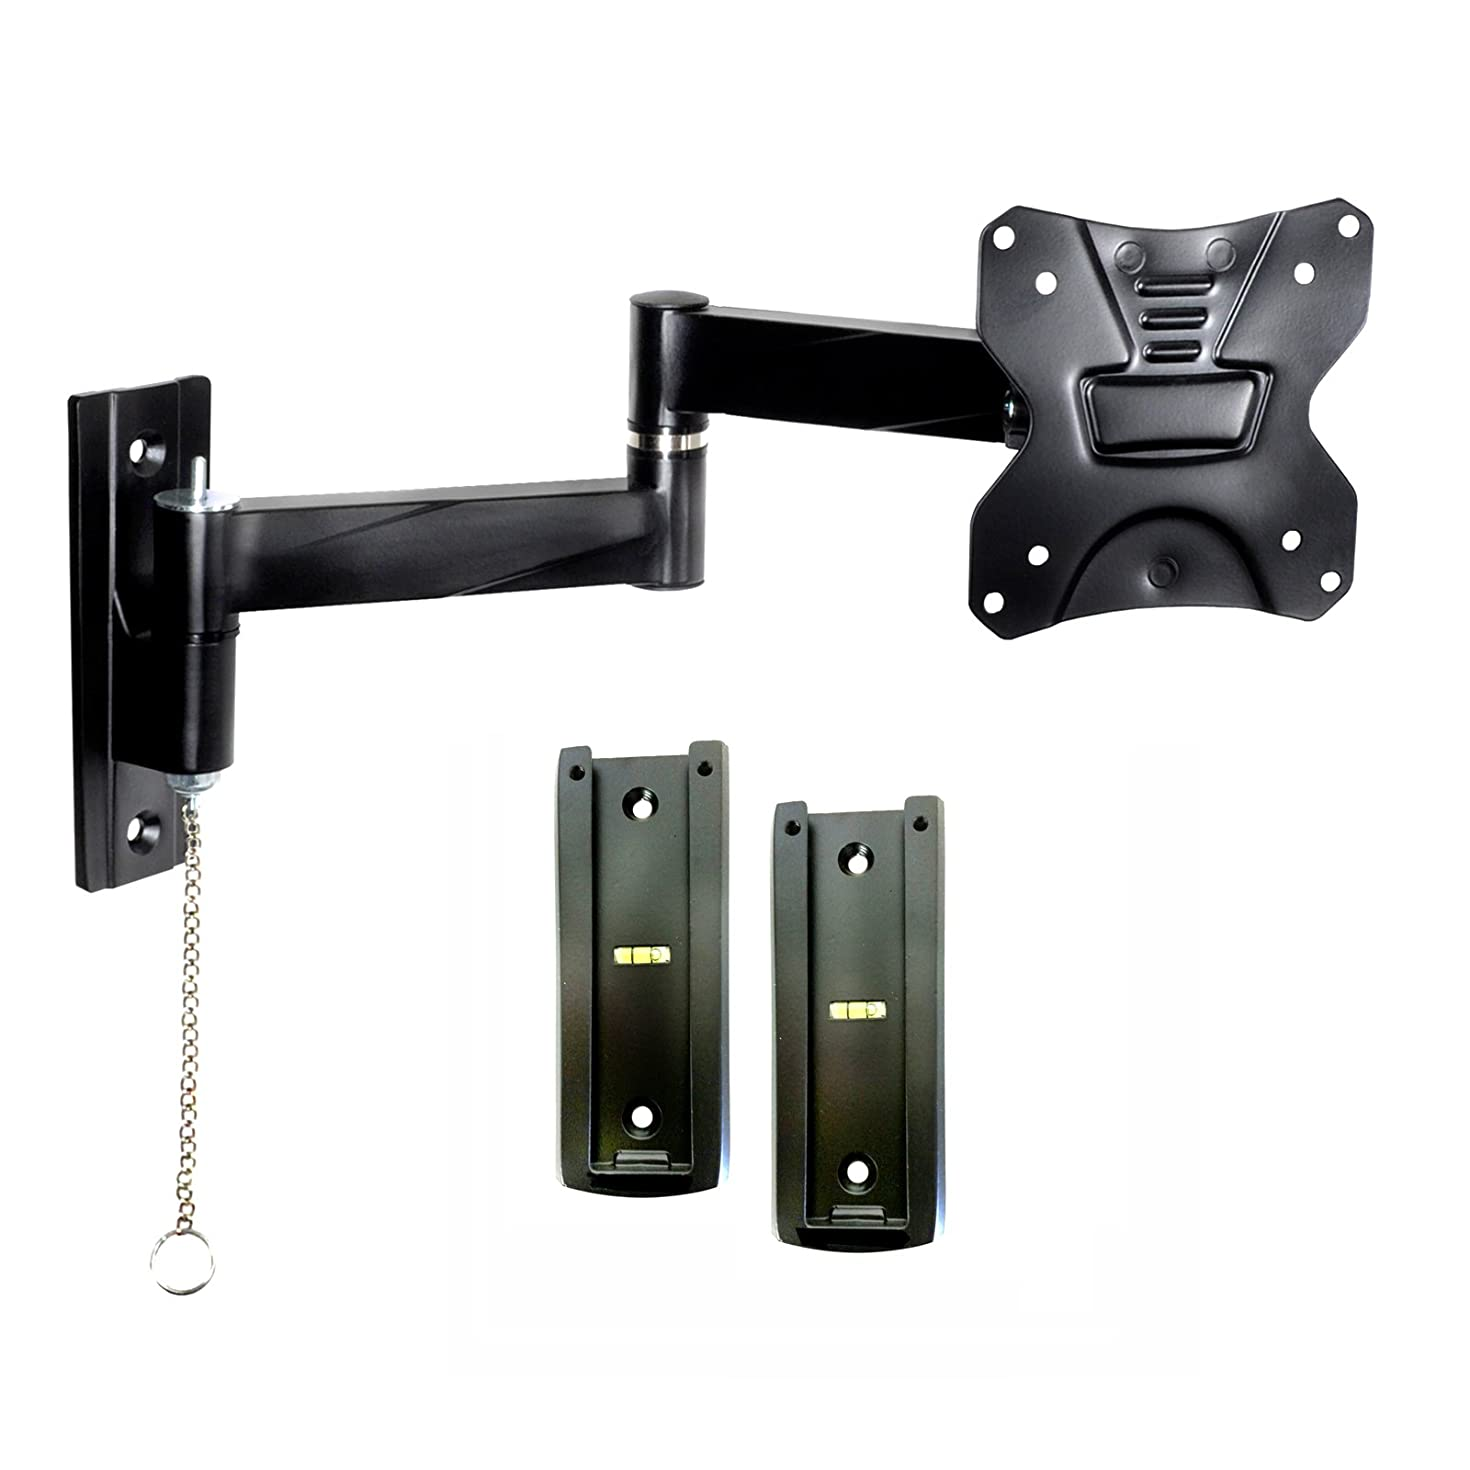 Master Mounts 2311L-2 Portable Travel RV TV Mount Locking Articulating Arm Allows 1 TV to be Used in 2 Locations, Keeps TV Secure in Moving Vehicles up to VESA 100x100